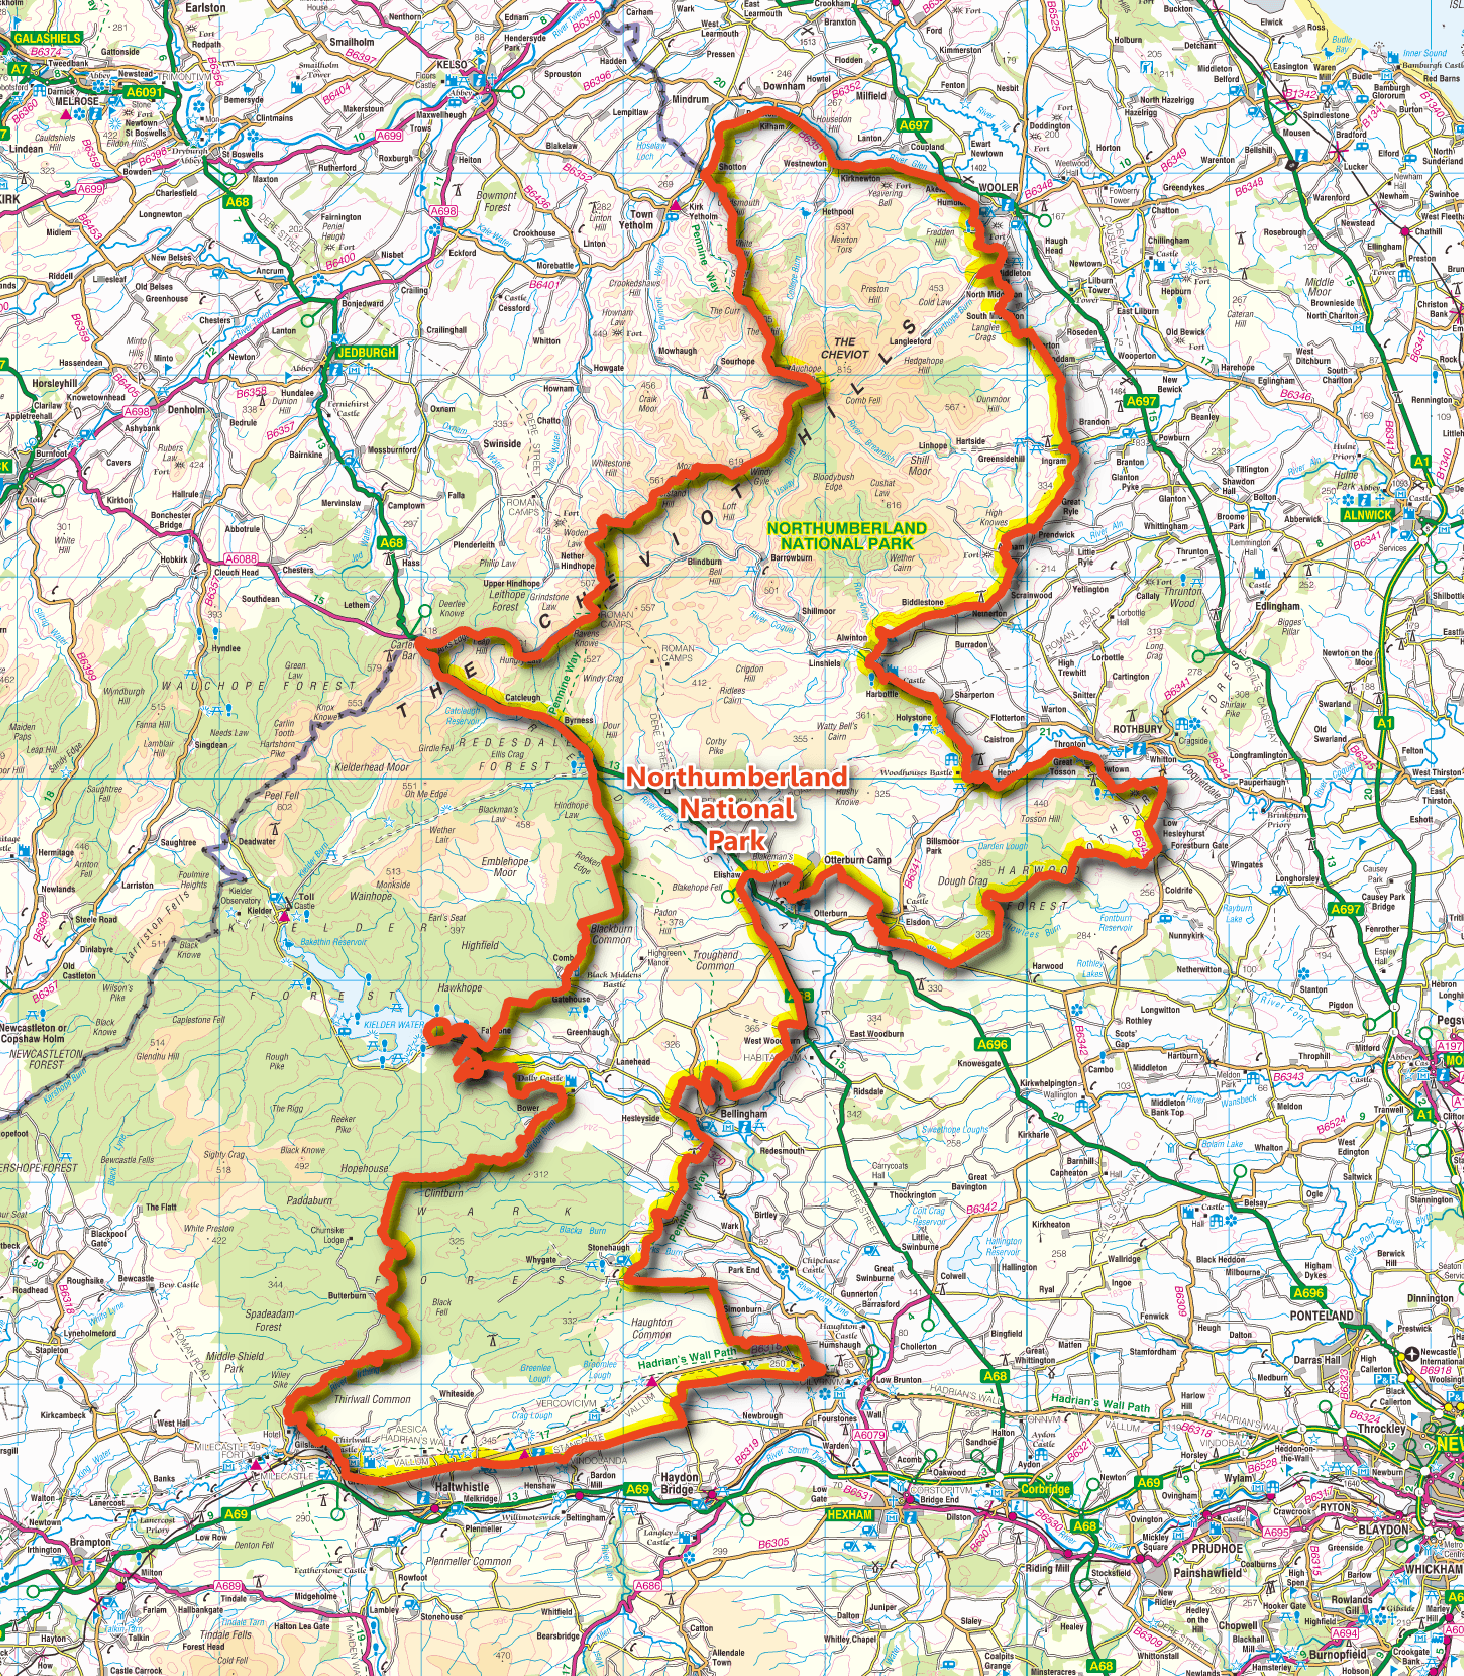 Map showing Northumberland National Park